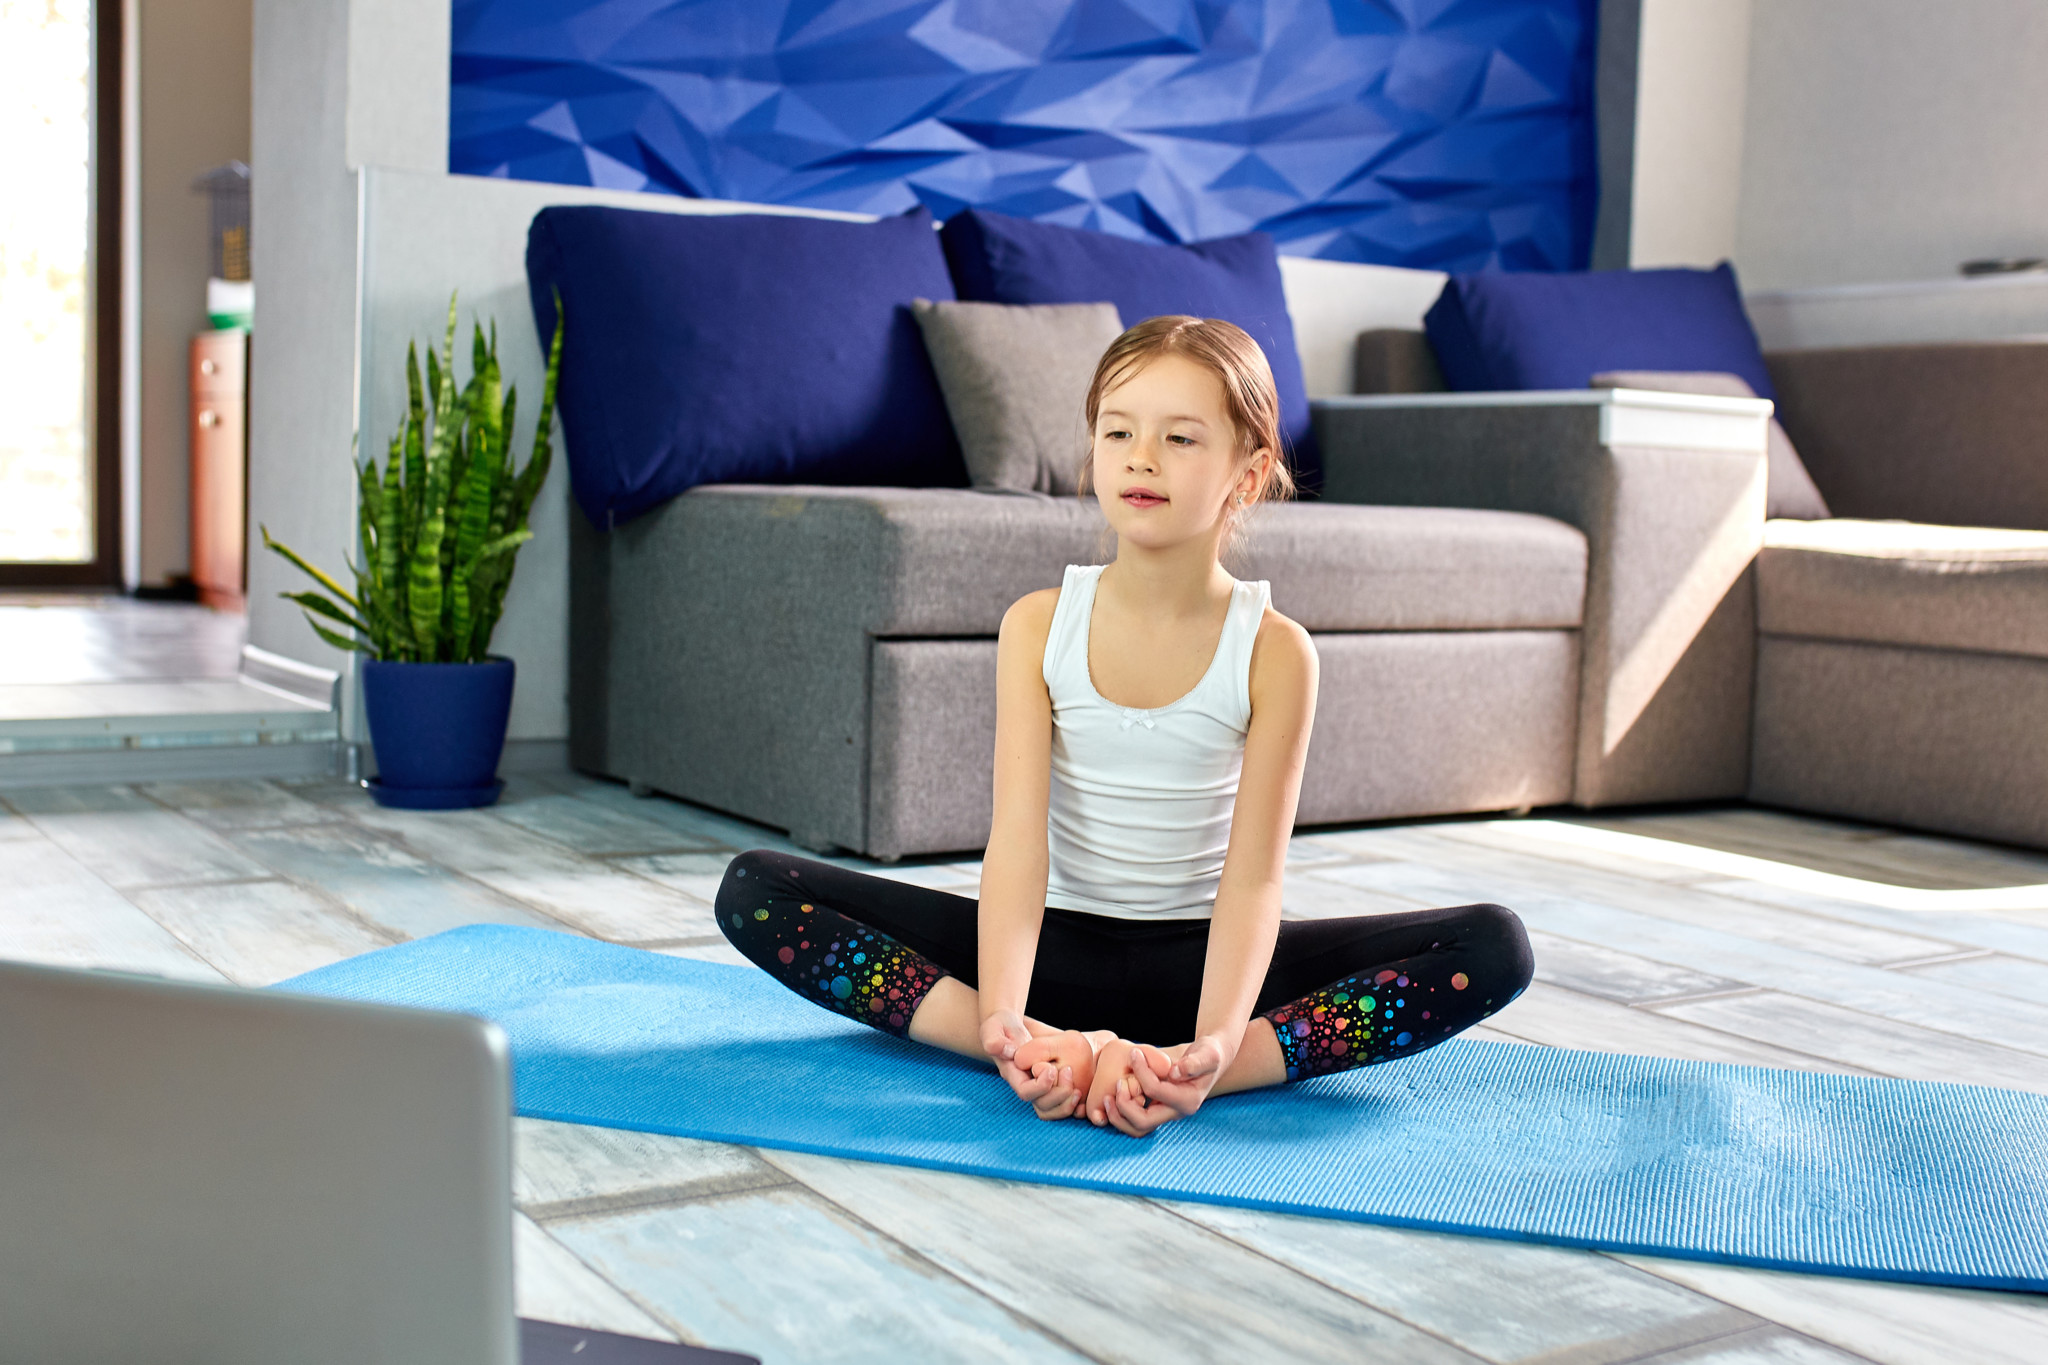 Little girl practicing yoga, stretching, fitness by video on notebook. Distant online education training, aerobic at home. Healthy lifestyle, coronavirus, stay home. Kids sport home quarantine.